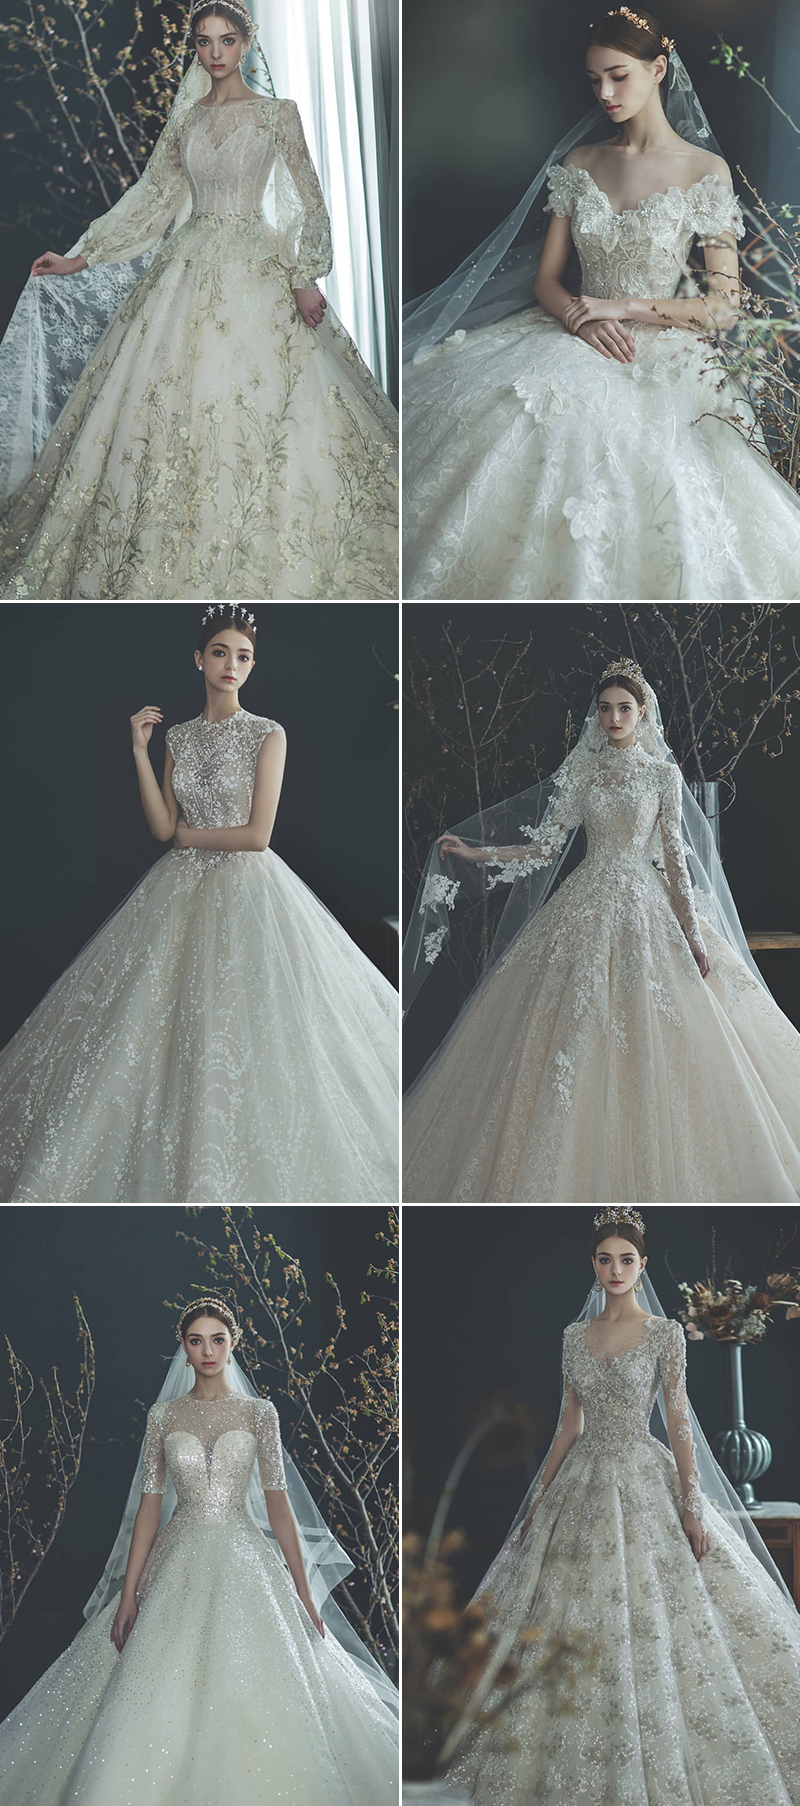 wedding fairytale dress enchanted dresses modern fairy tale featuring clara